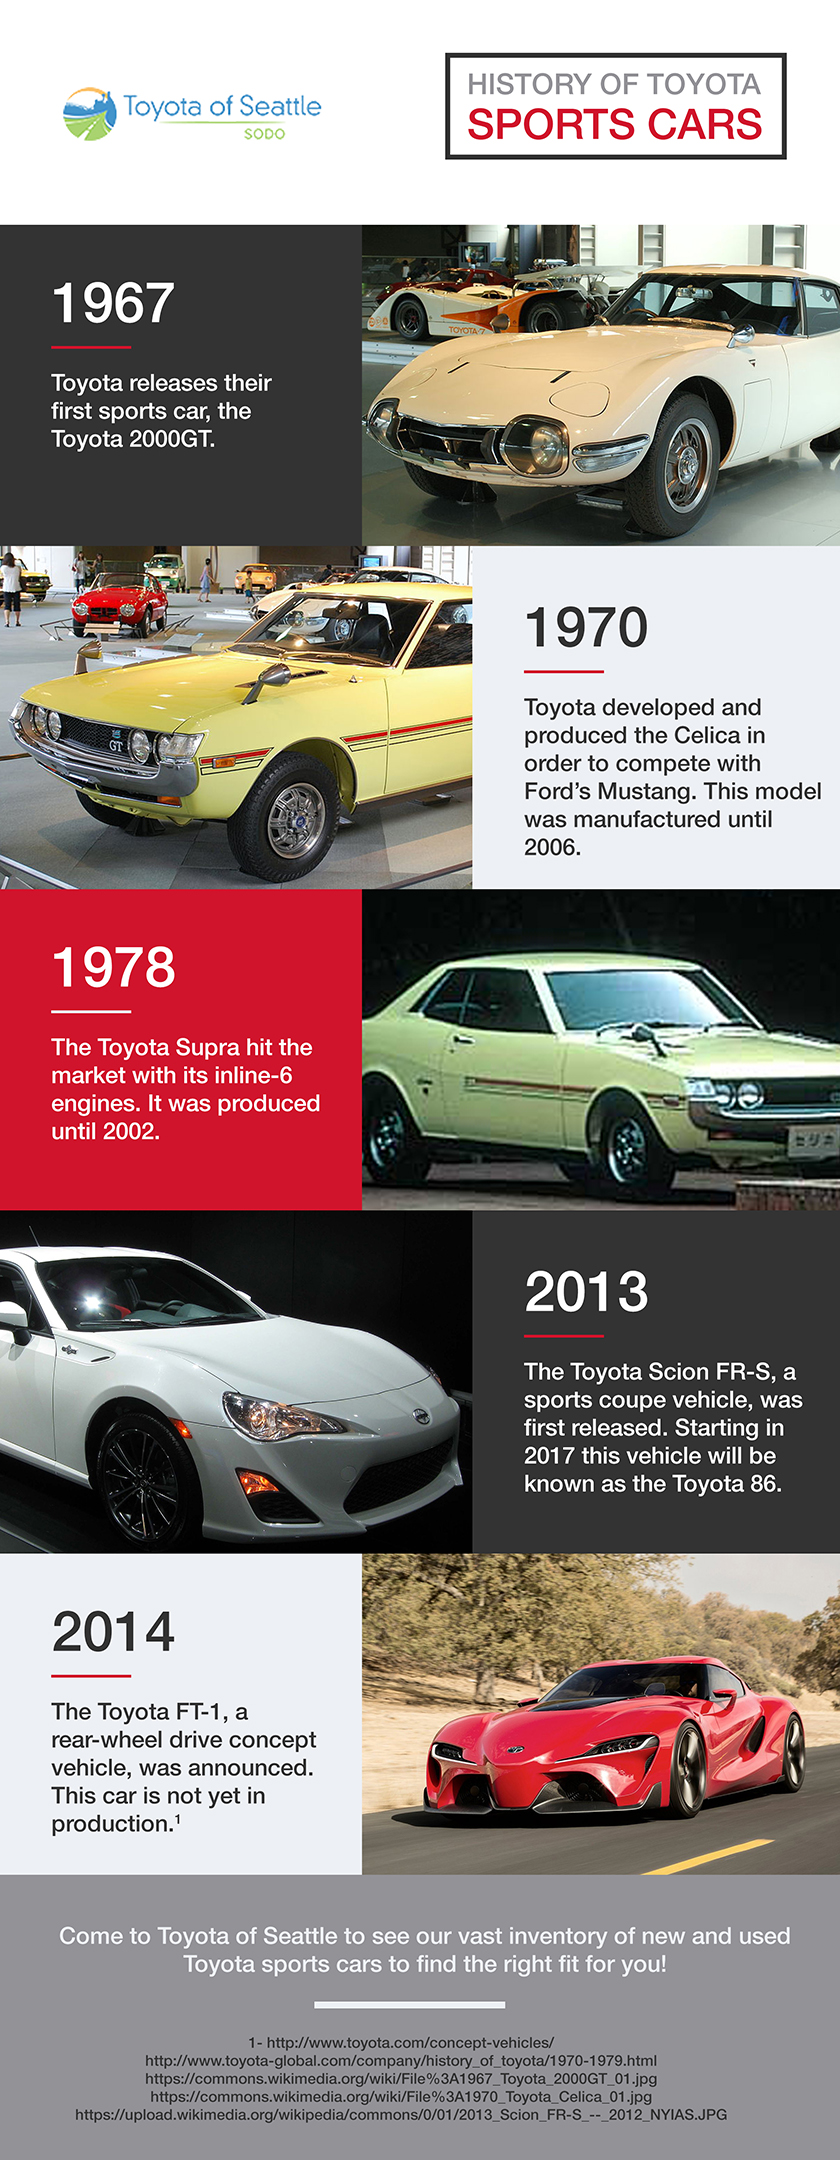 Toyota Sports Car History Infographic